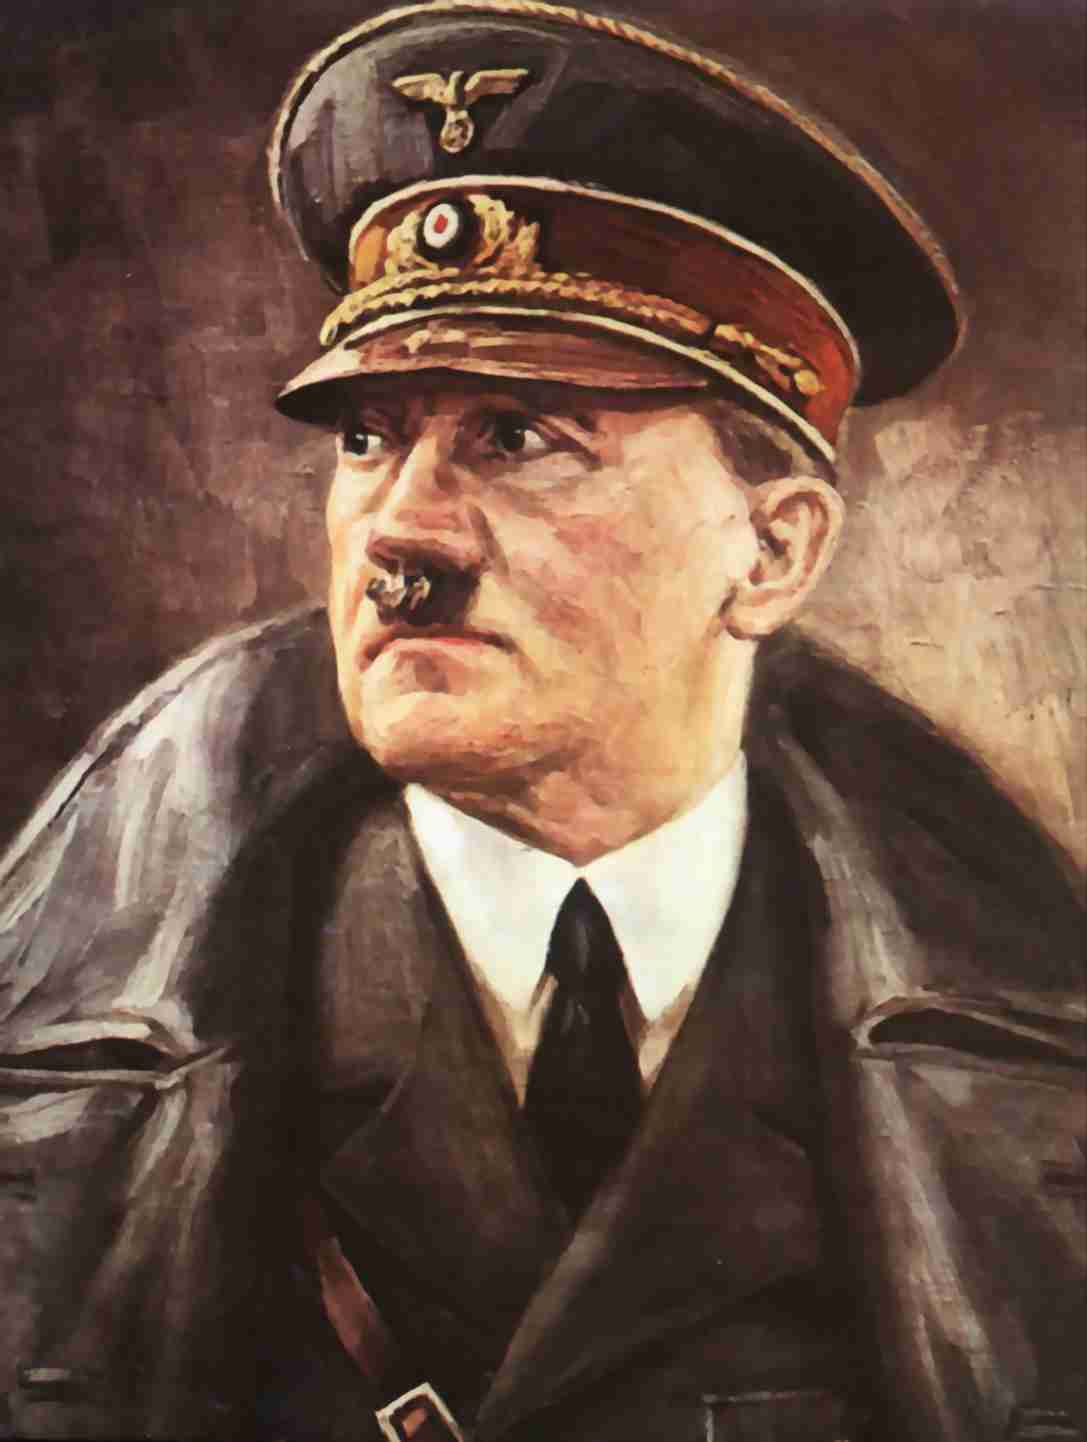 http://tejiendoelmundo.files.wordpress.com/2011/06/hitler.jpg